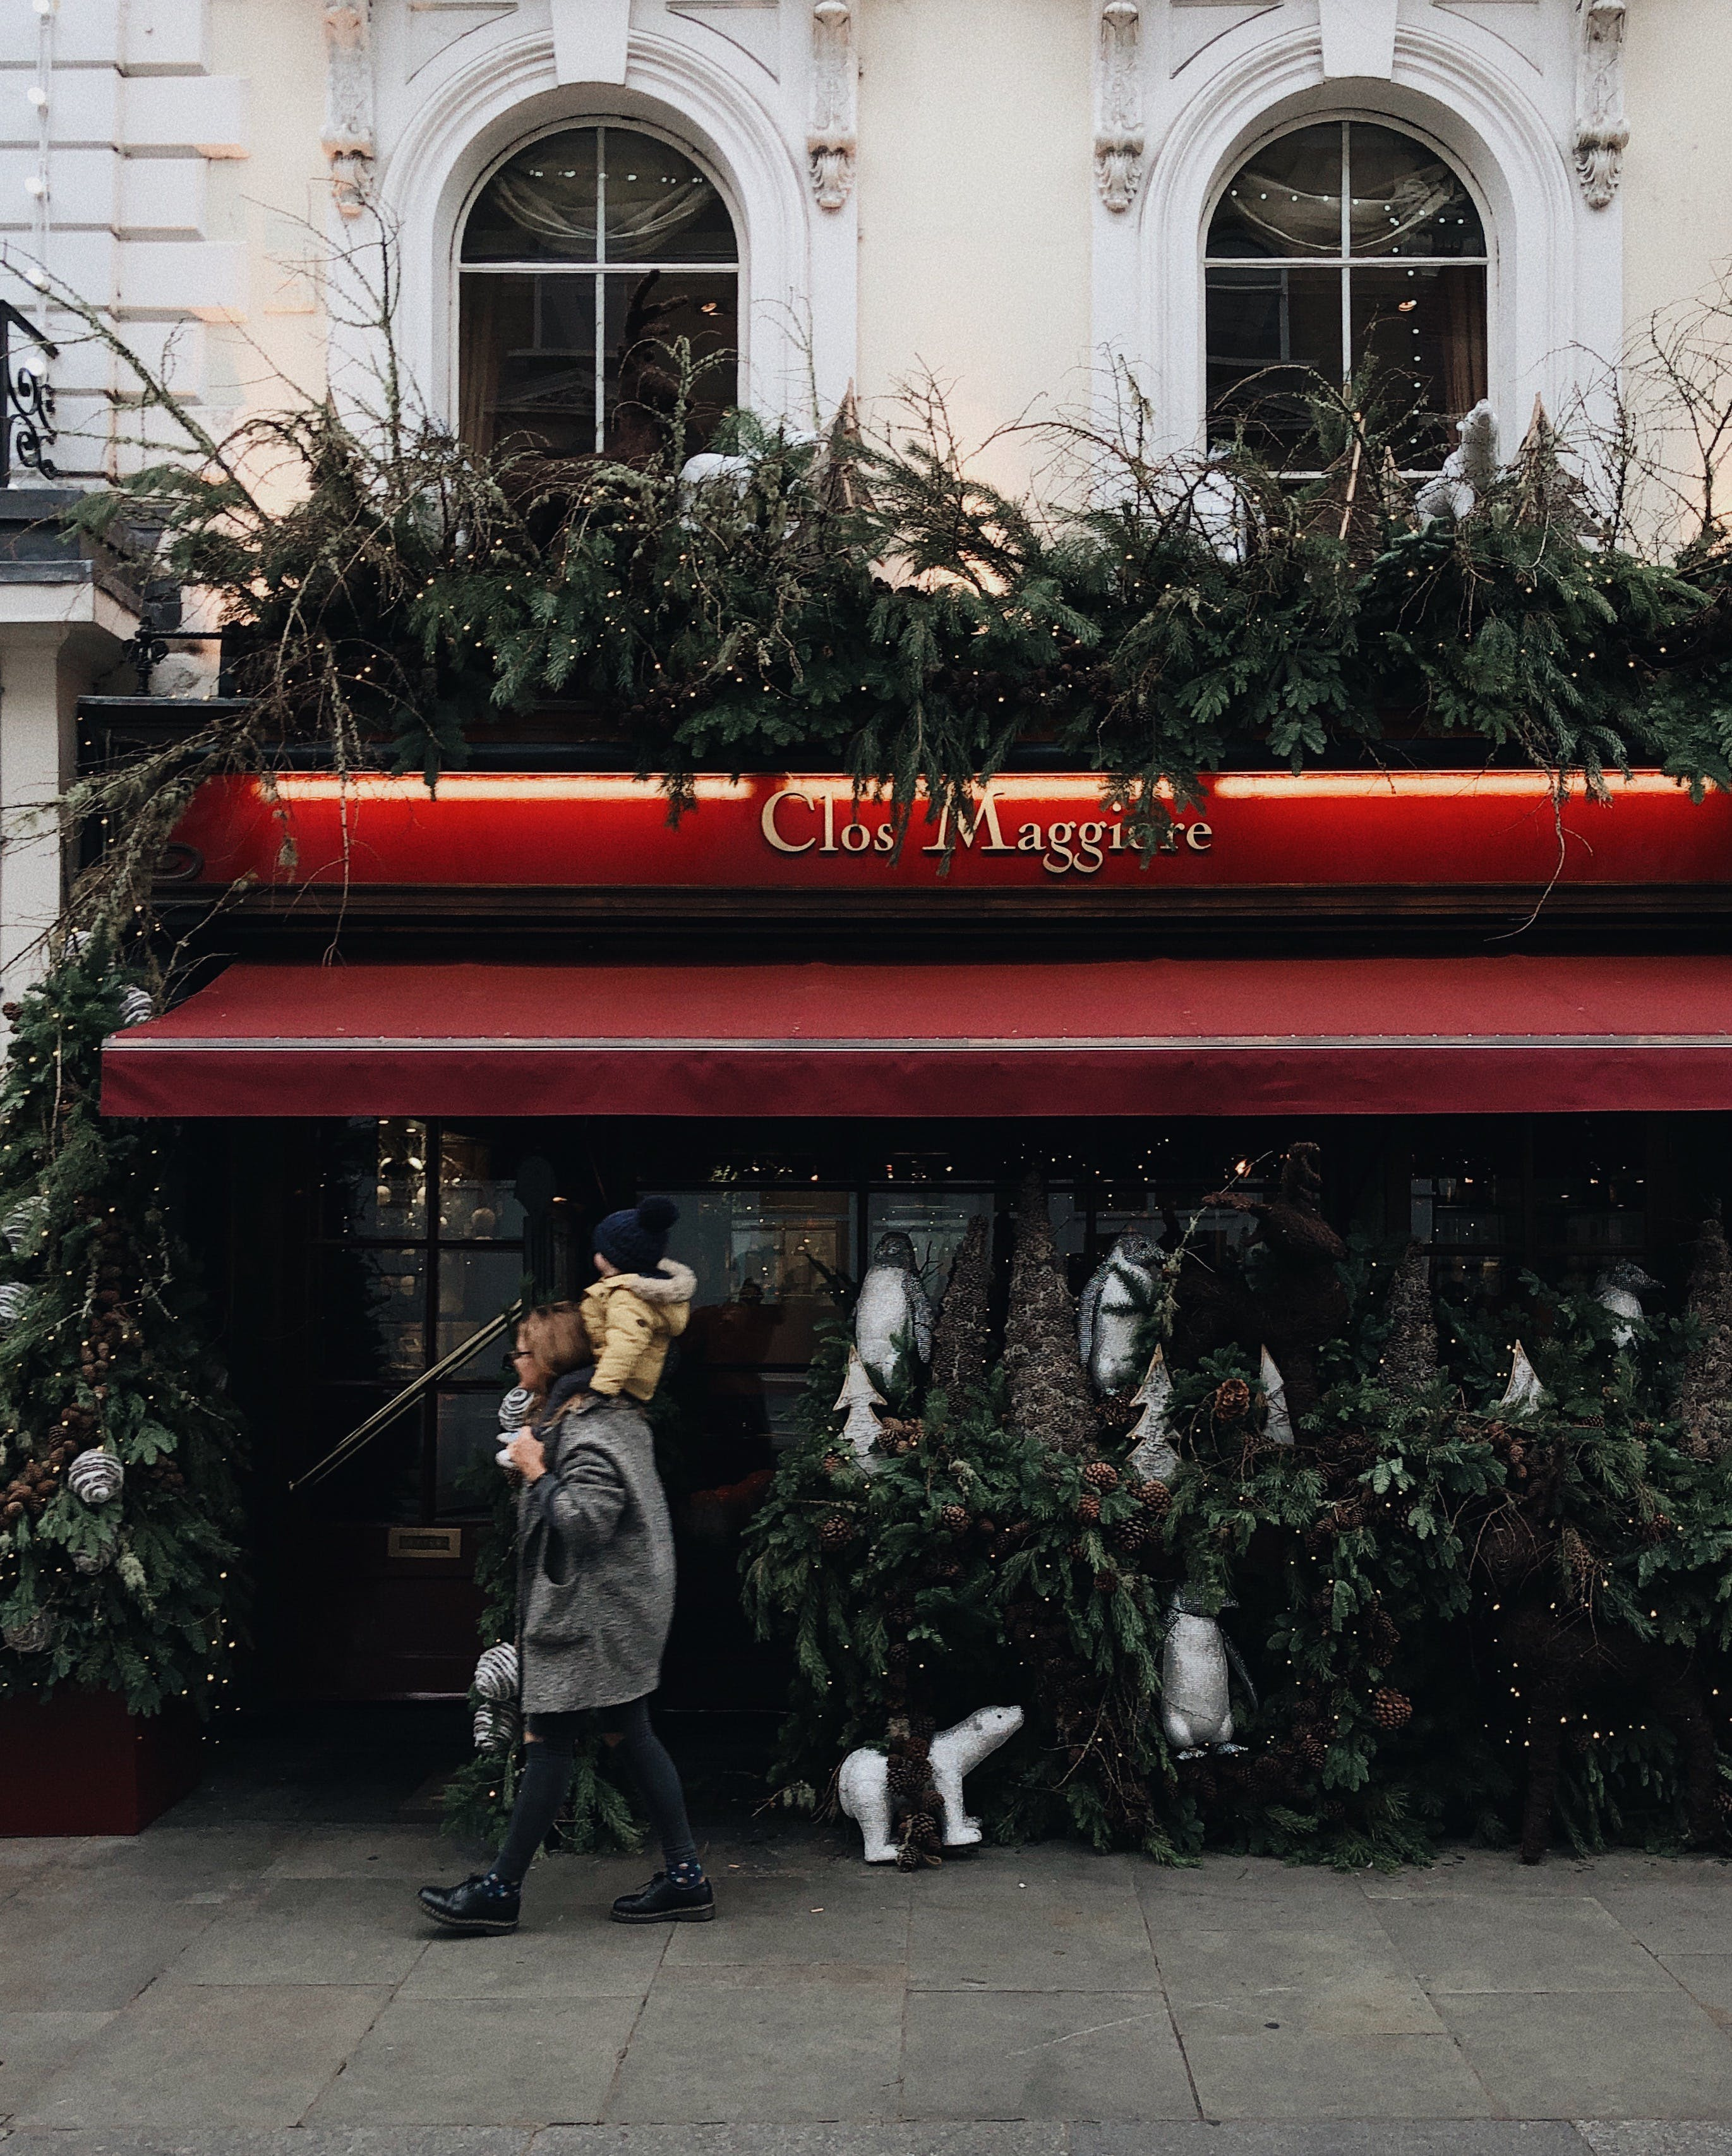 Woman Carrying Child Near Clos Maggiore Stall